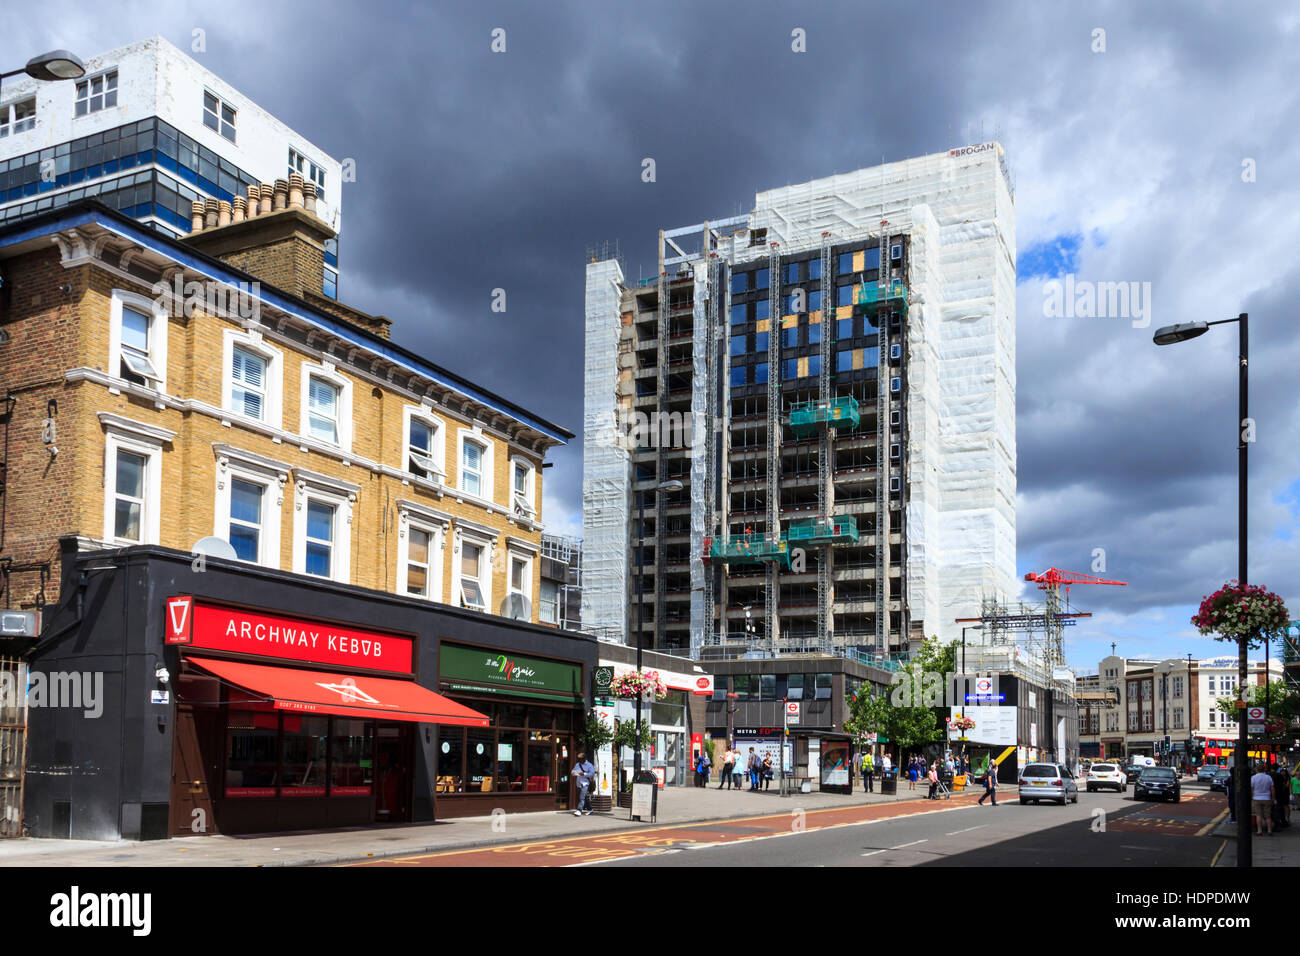 Archway Tower, North London, Wrapped Prior To Its Redevelopment By Essential  Living As U0027Vantage Pointu0027 In 2015, Archway Kebabs On The Left. Junction R